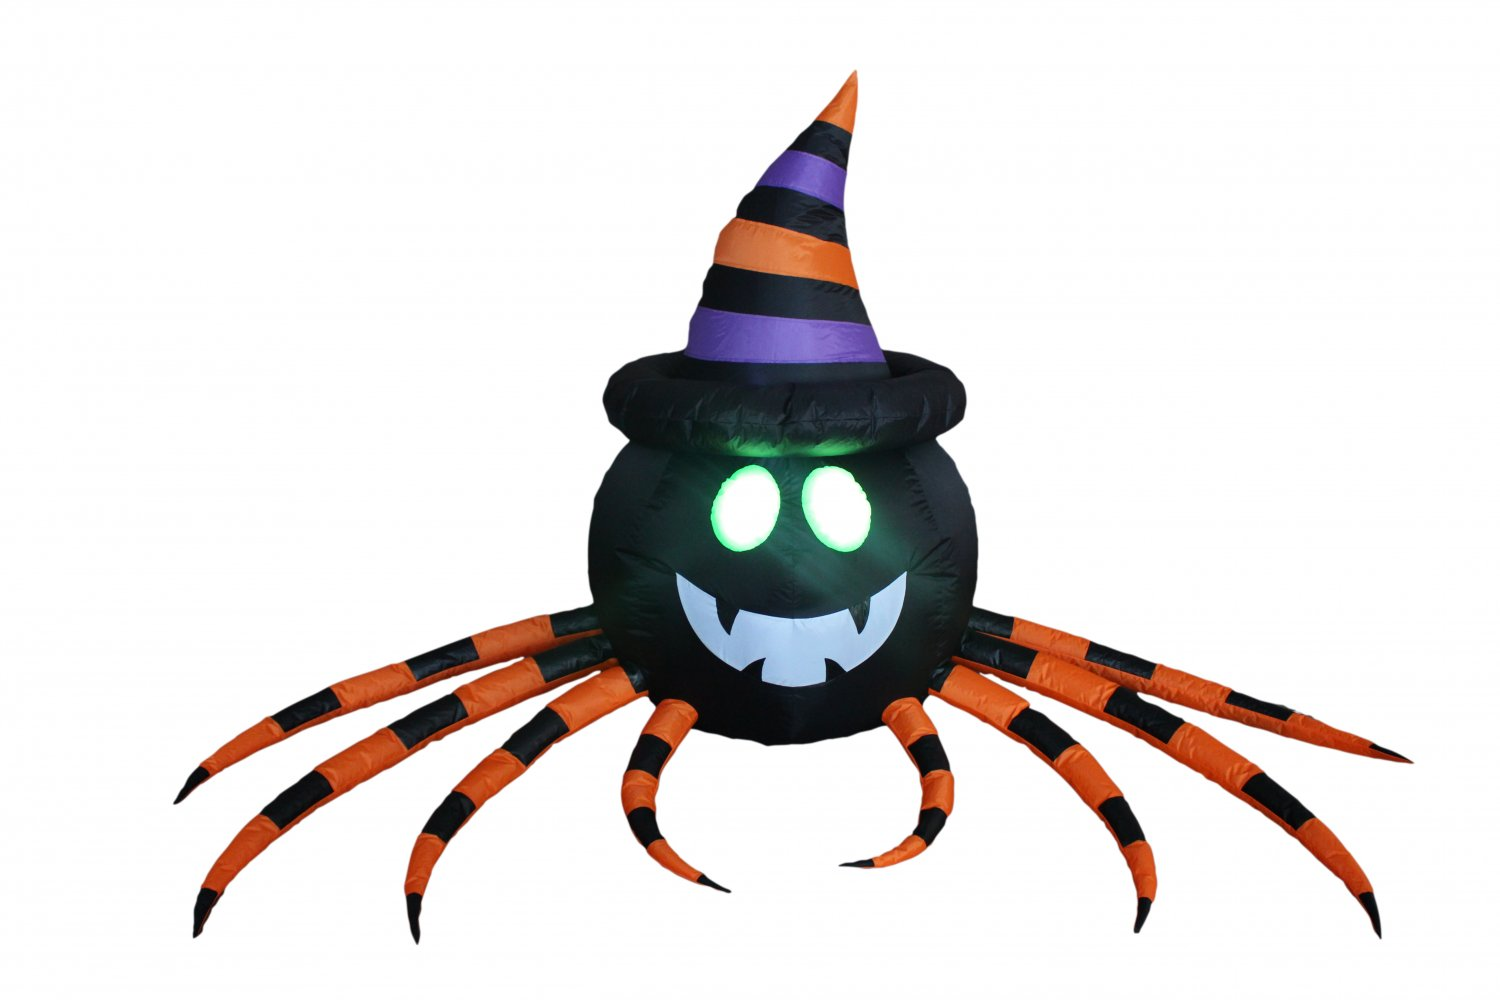 8 Foot Long Halloween Inflatable Spider with Hat Decoration #295